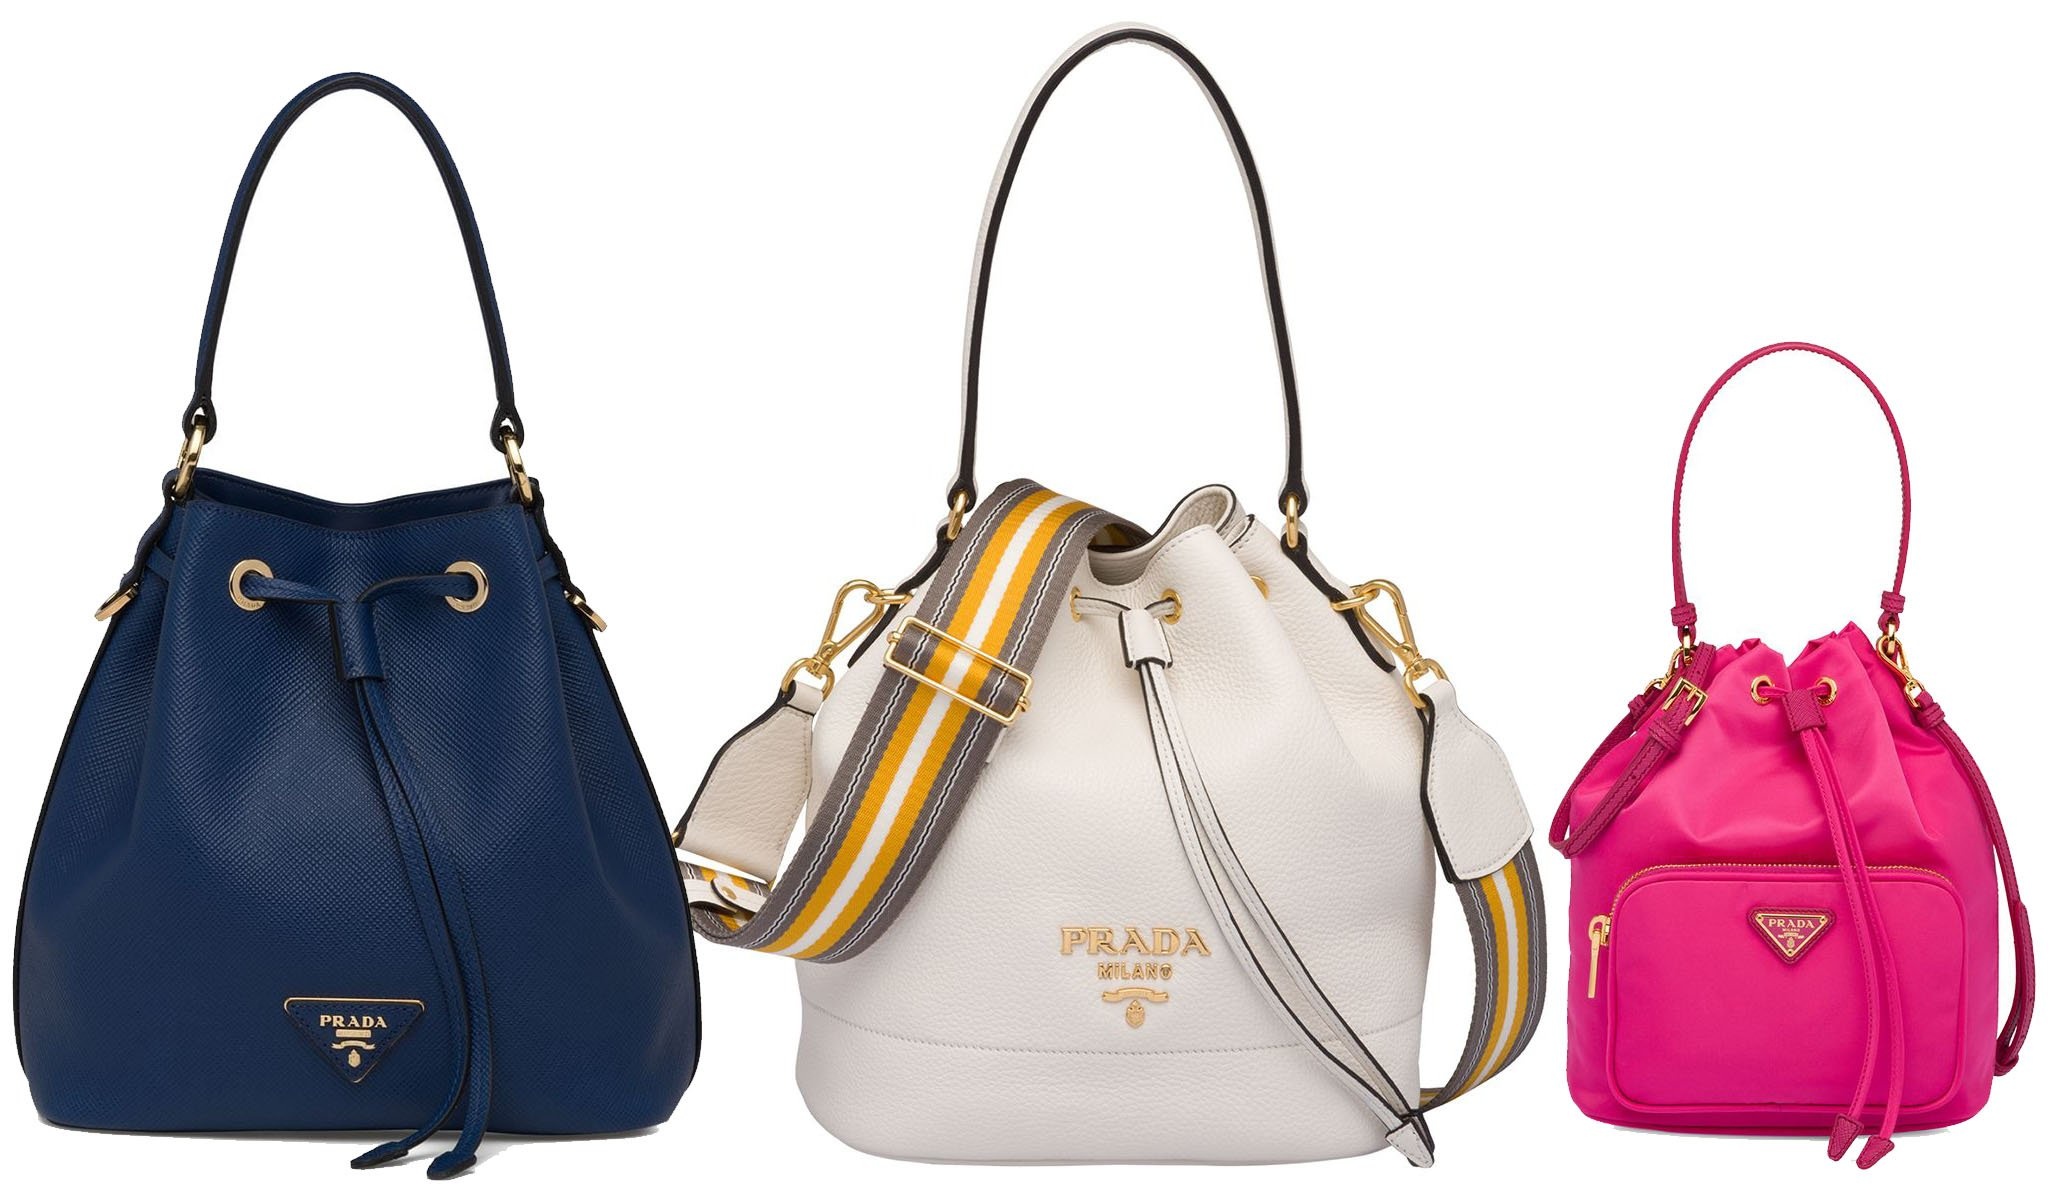 Prada Bucket bags in blue saffiano, white calf leather, and pink technical nylon